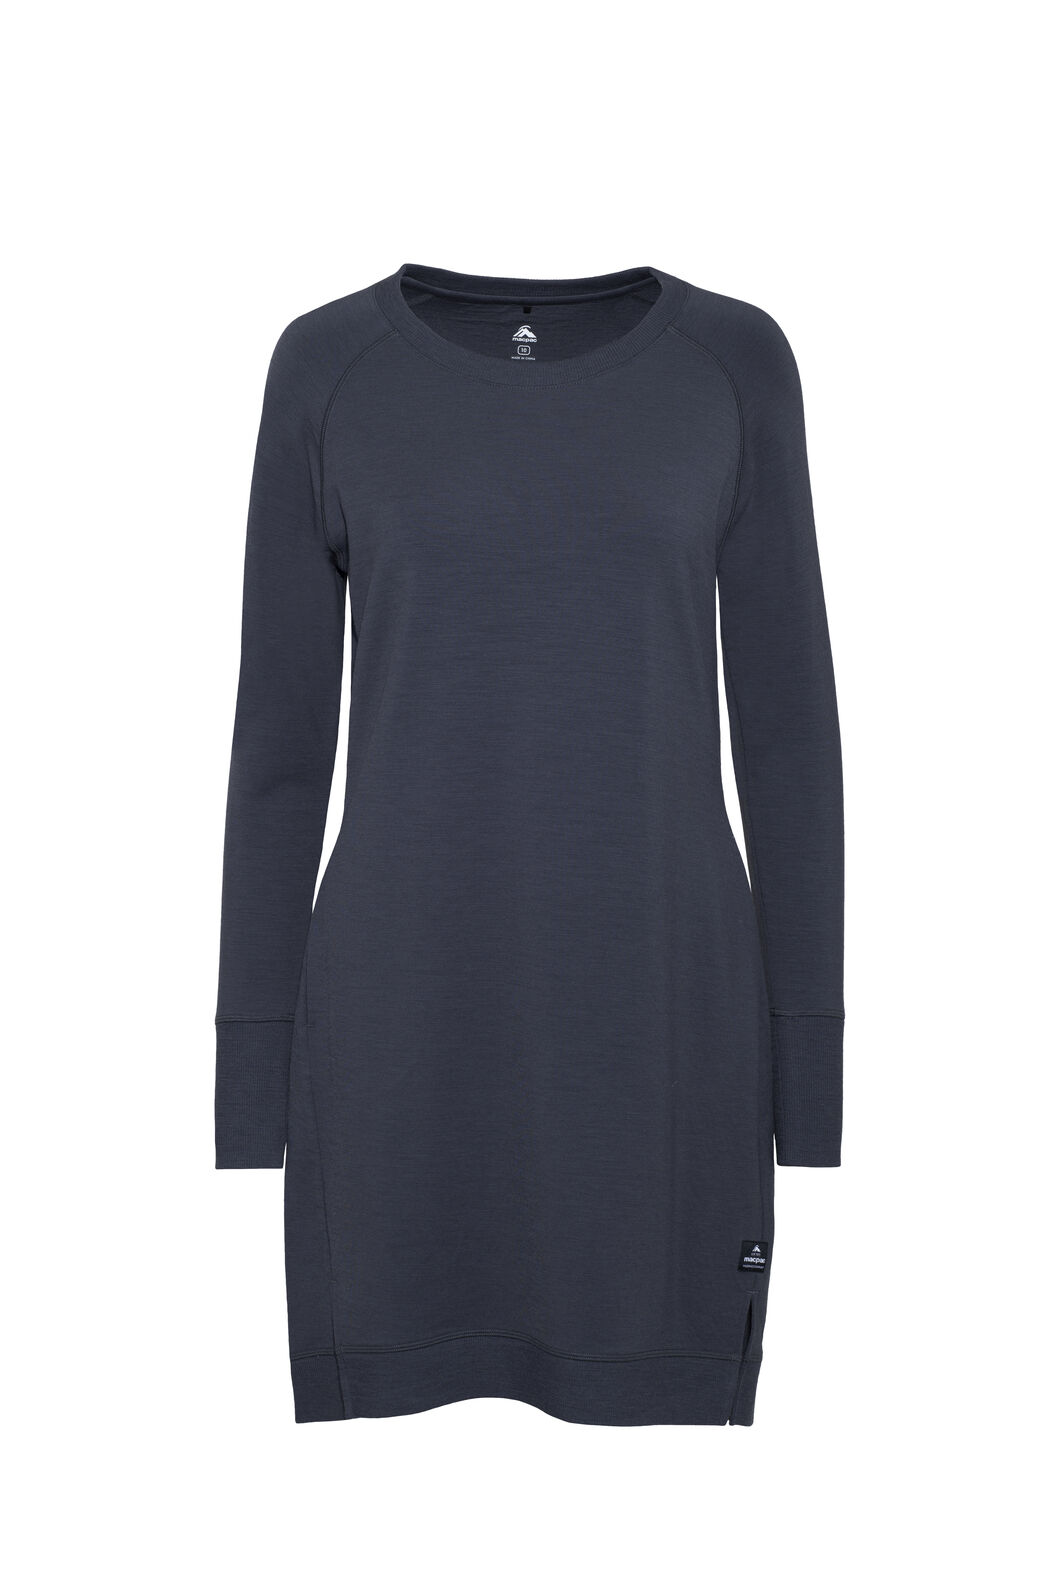 Macpac Platform Merino Dress — Women's, India Ink, hi-res